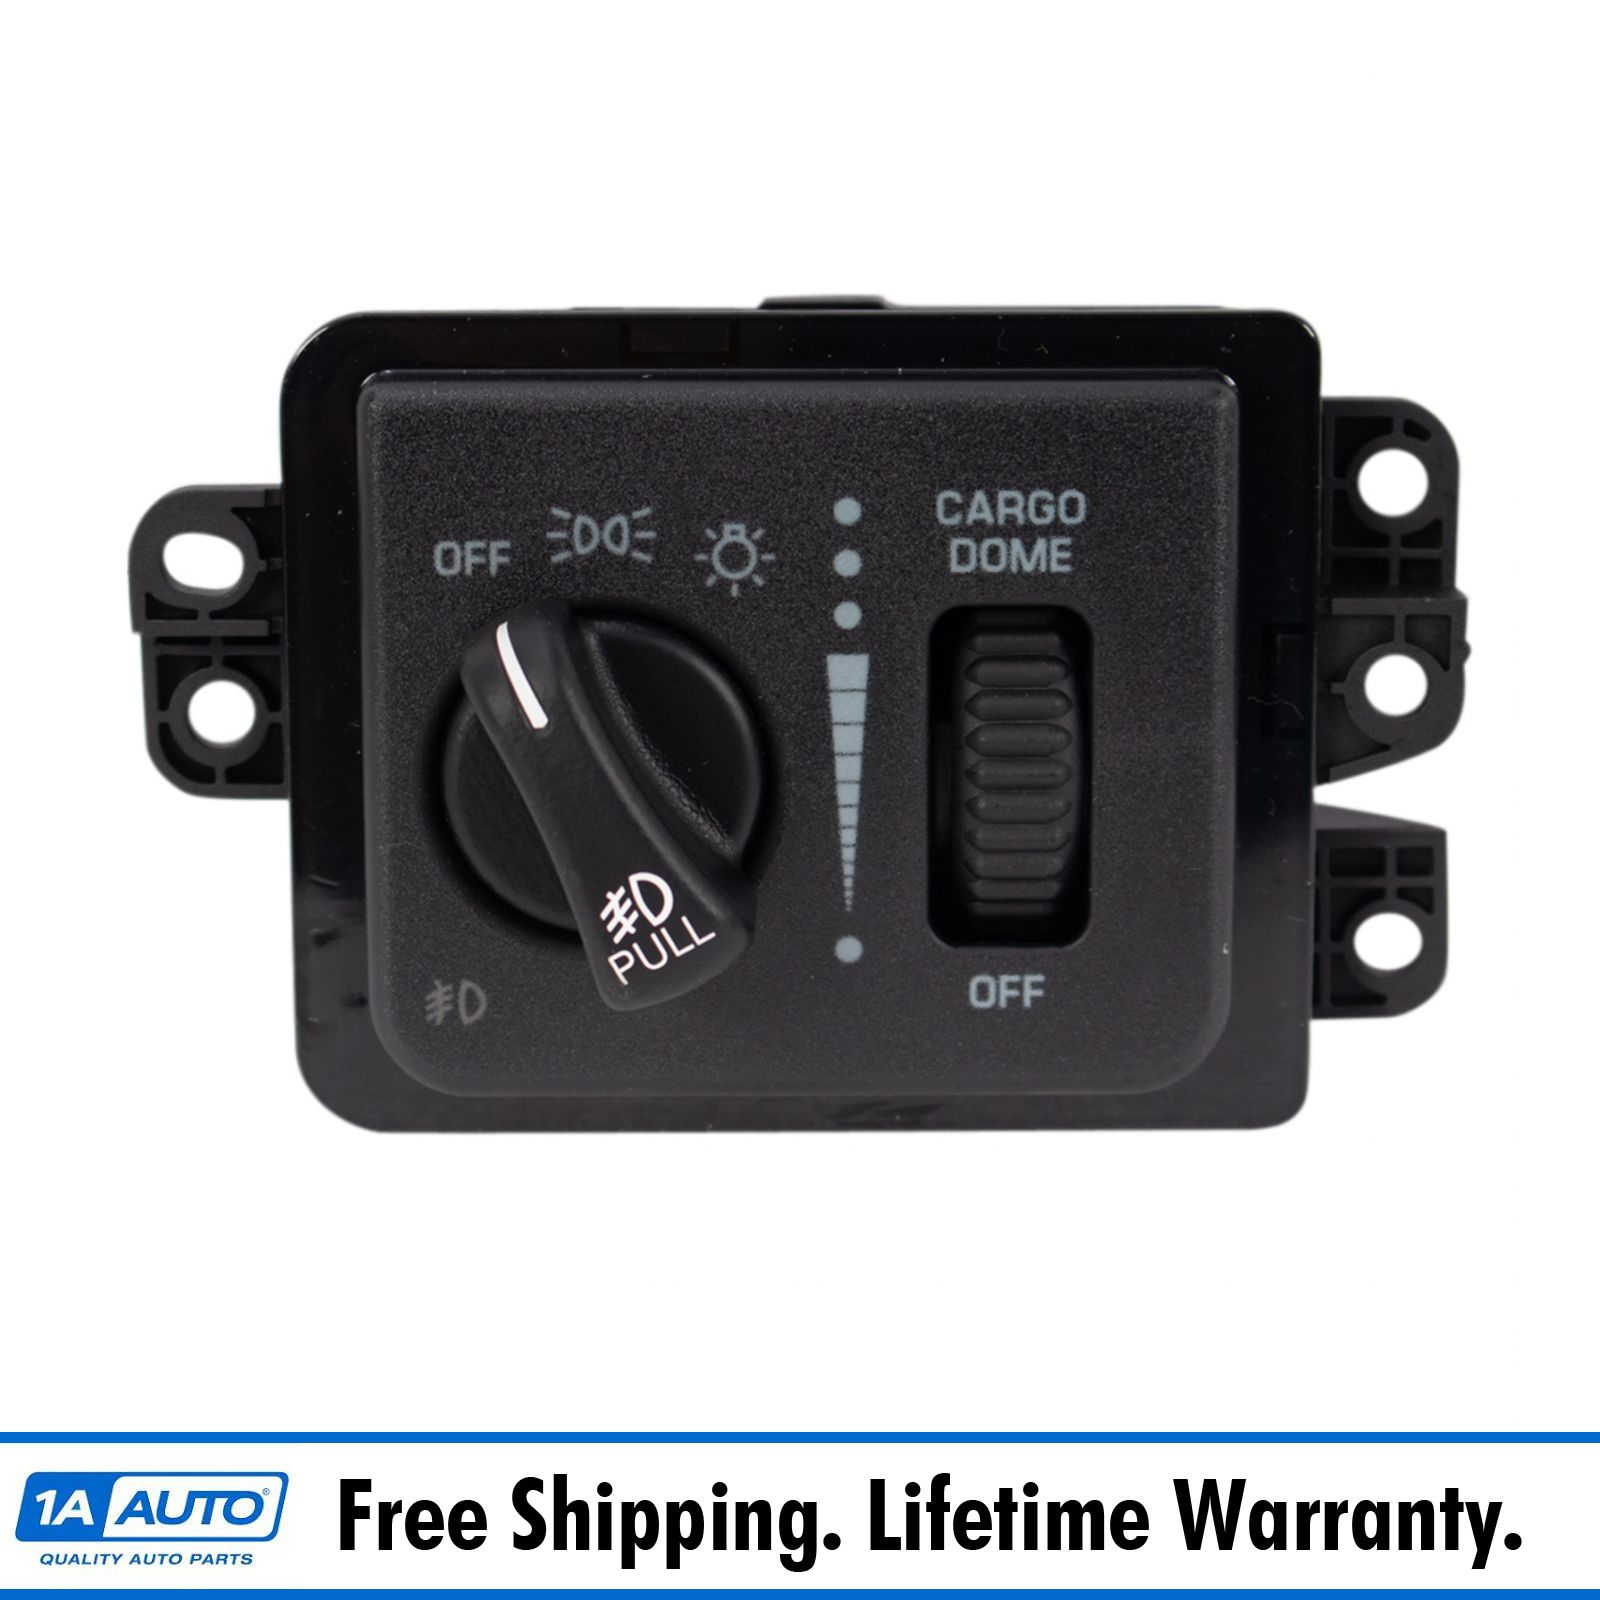 Headlight Fog Light Switch for Dodge Ram Pickup 1500 2500 3500 ...